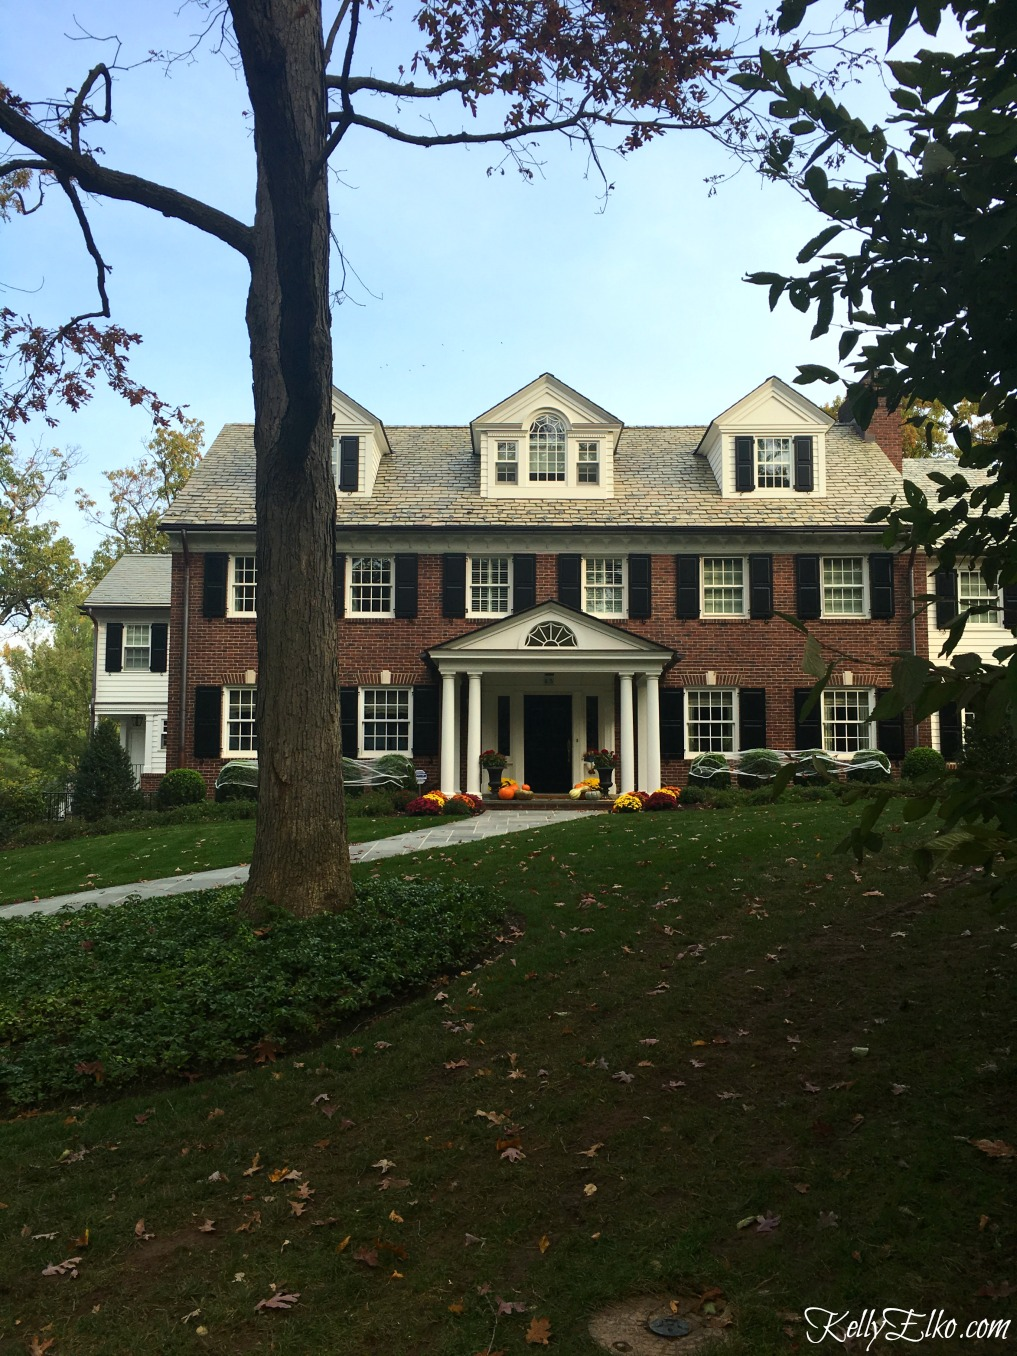 Love this classic brick colonial house - see more fall homes with curb appeal kellyelko.com